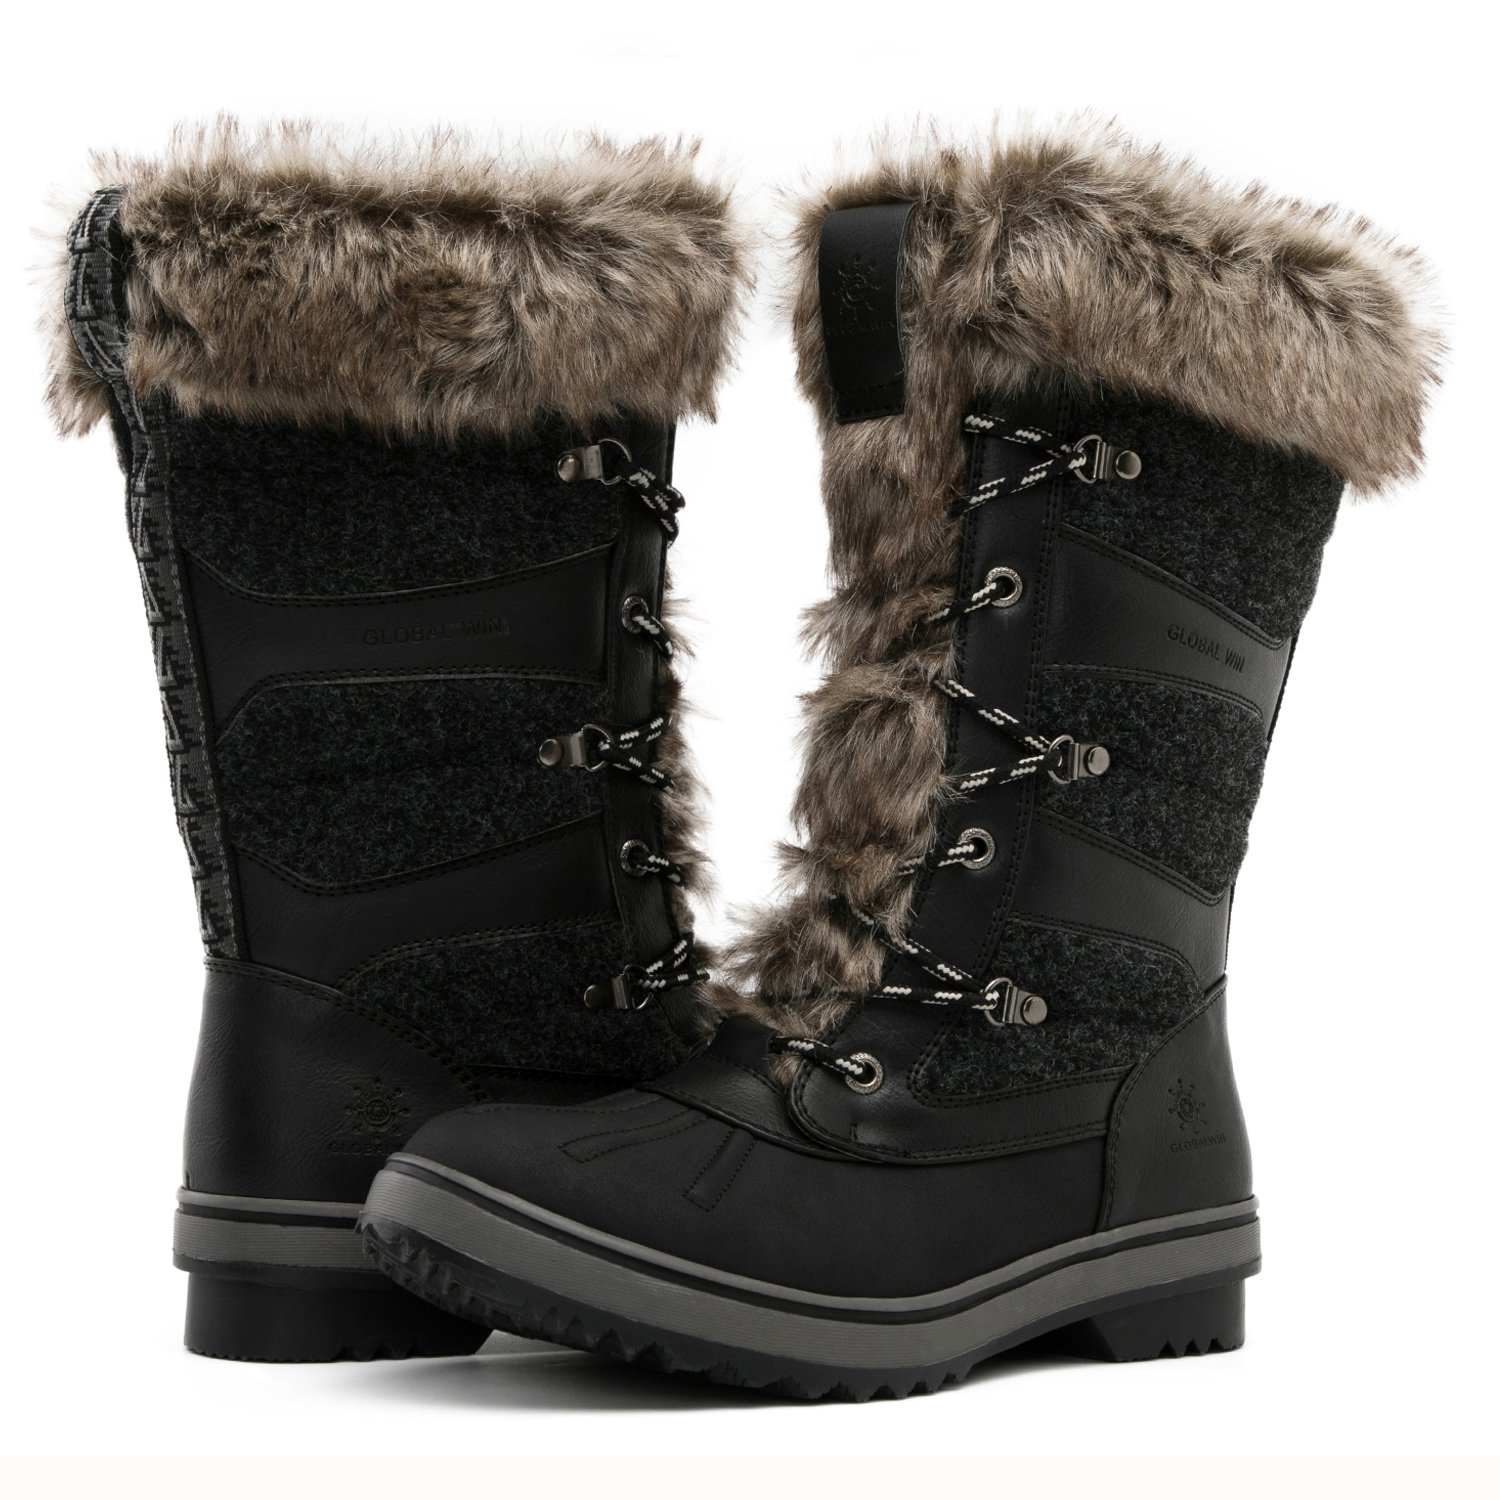 Global Win GLOBALWIN Women's 1730 Winter Snow Boots B074XCN81C 7 B(M) US|1730black